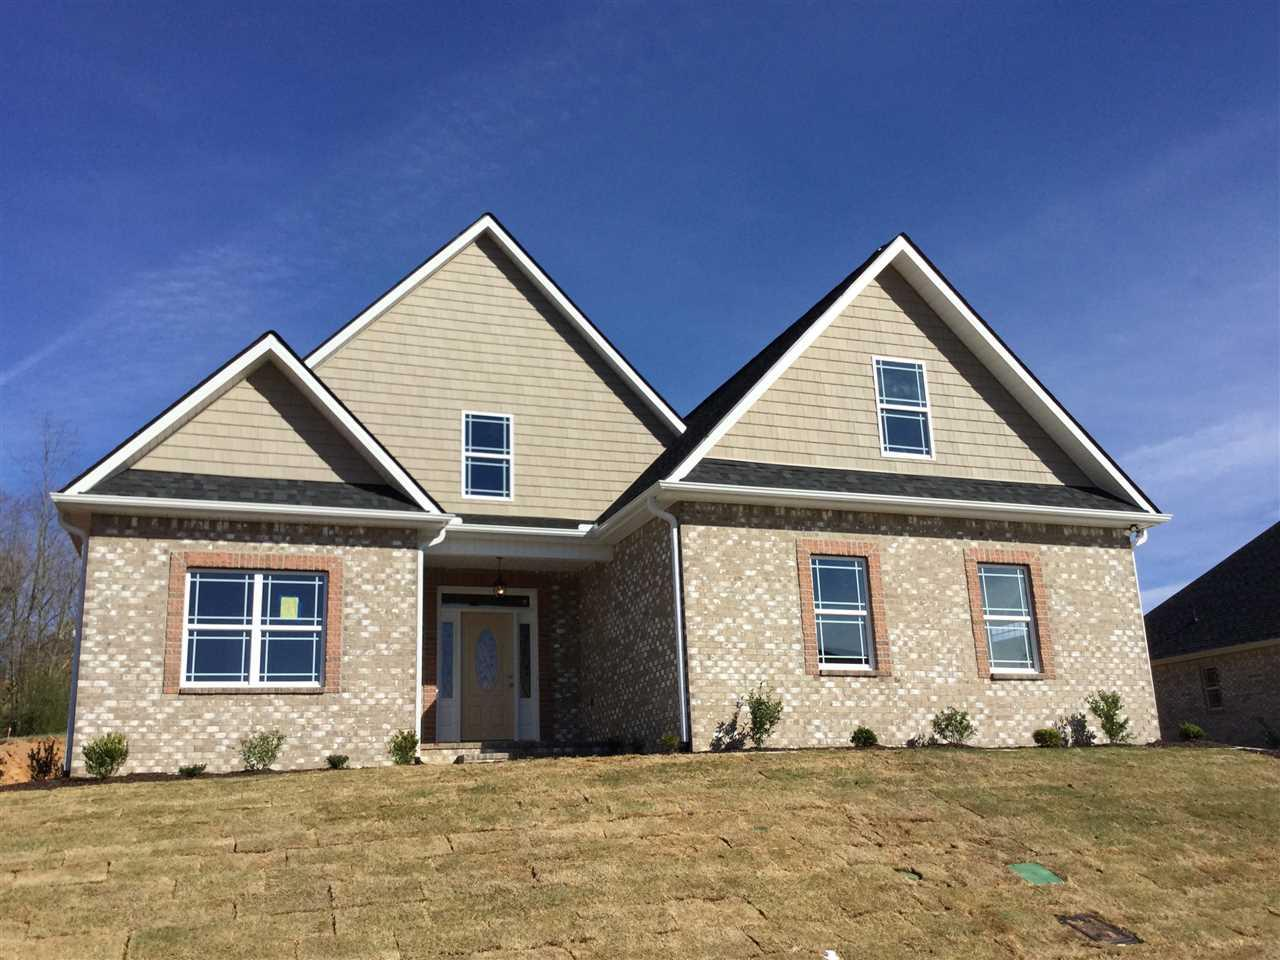 1020 Tuscany Drive, Anderson, SC 29621 (MLS #20181835) :: Les Walden Real Estate